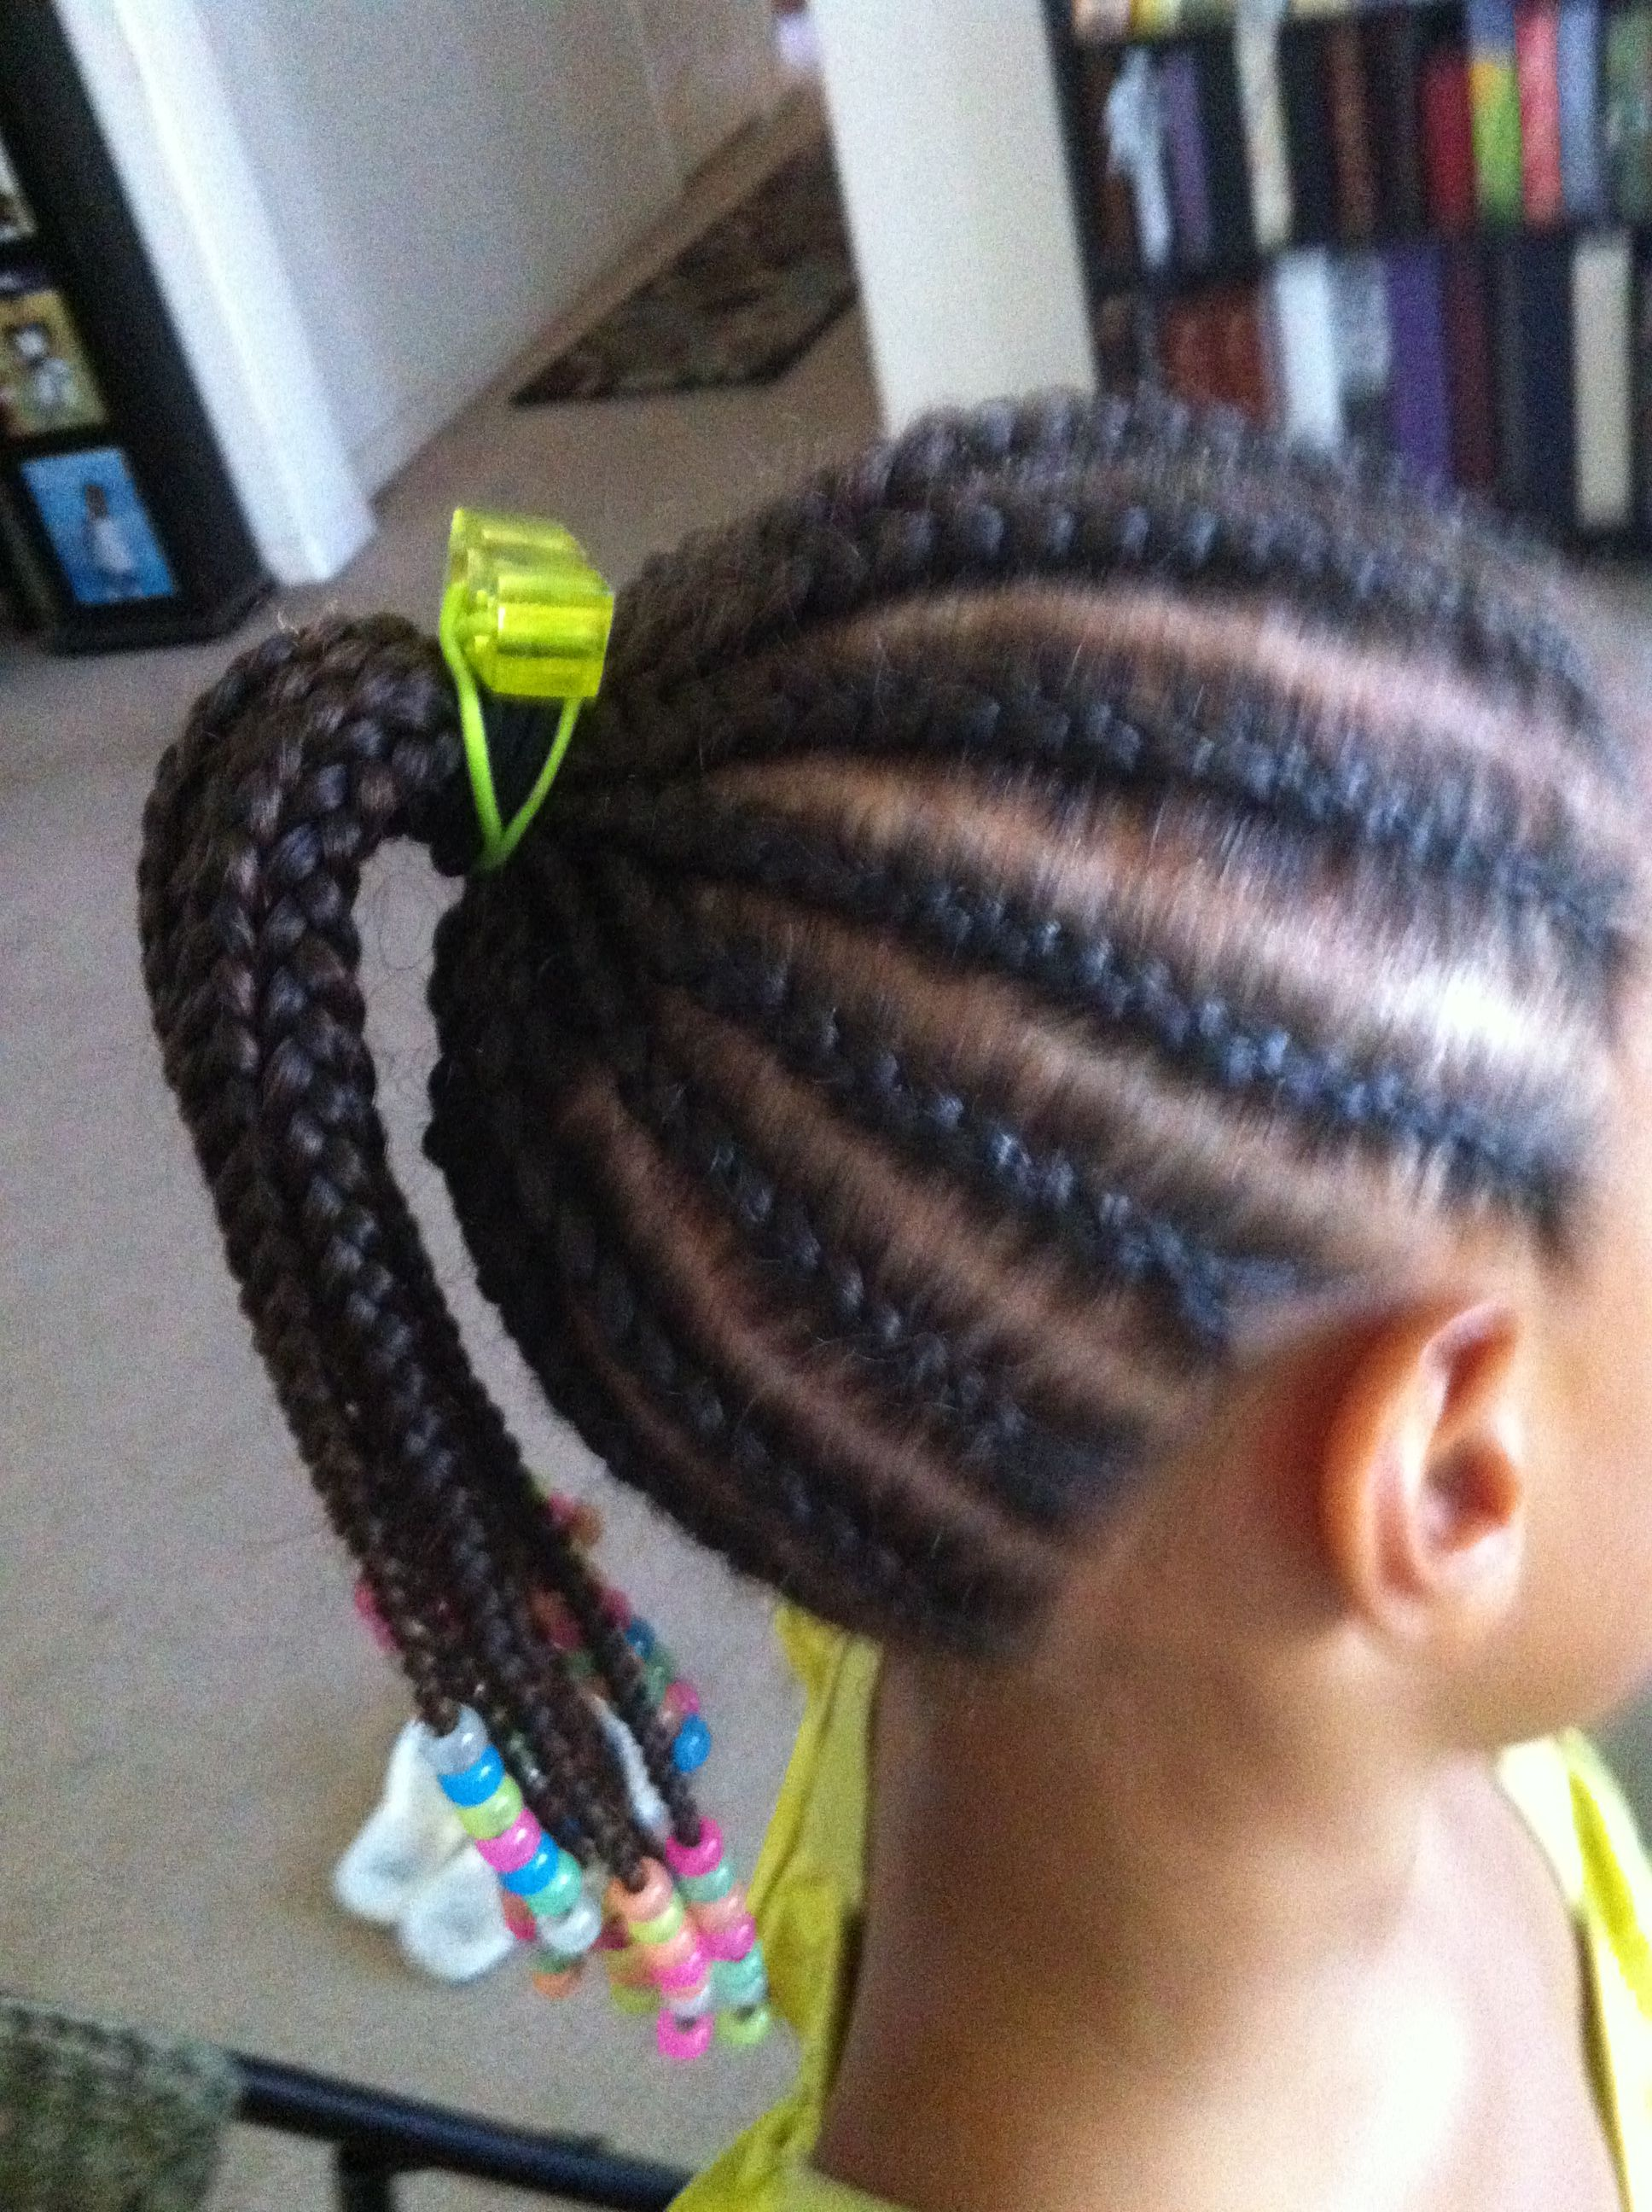 Sensational Girls Braids And Beads On Pinterest Hairstyles For Women Draintrainus